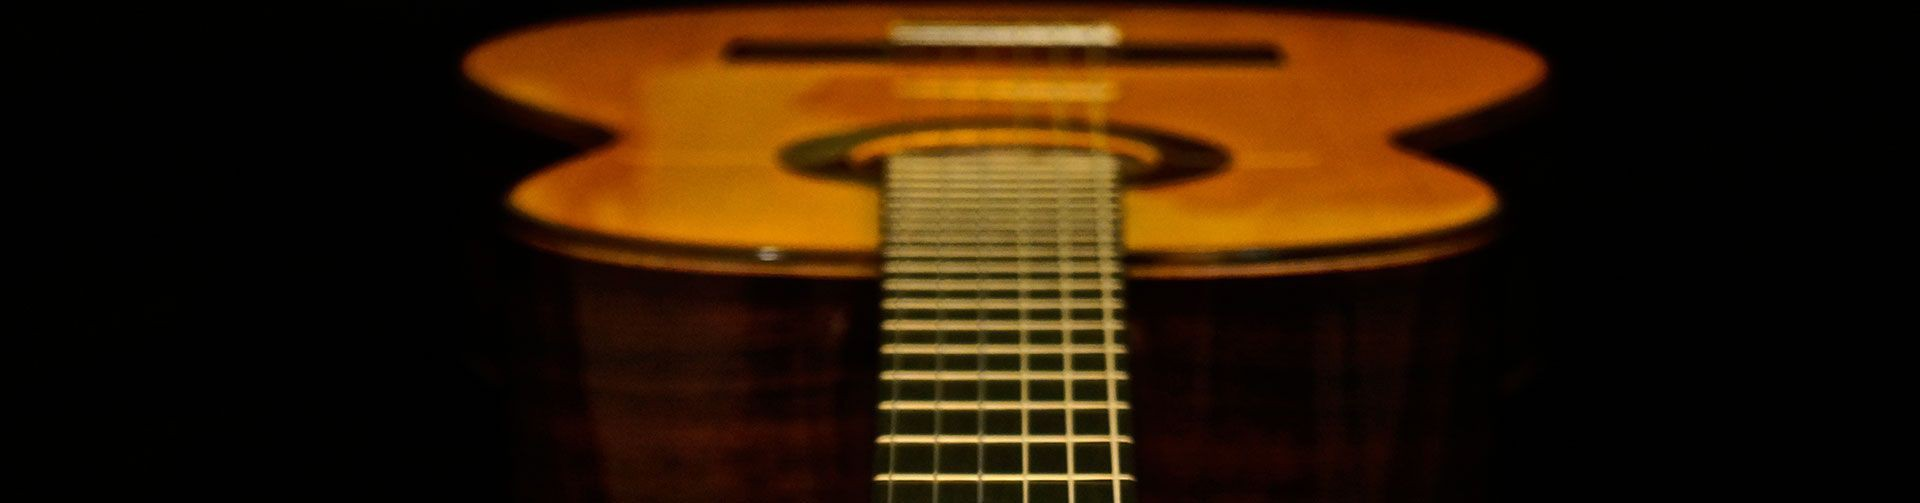 Specialists in classical concert guitars